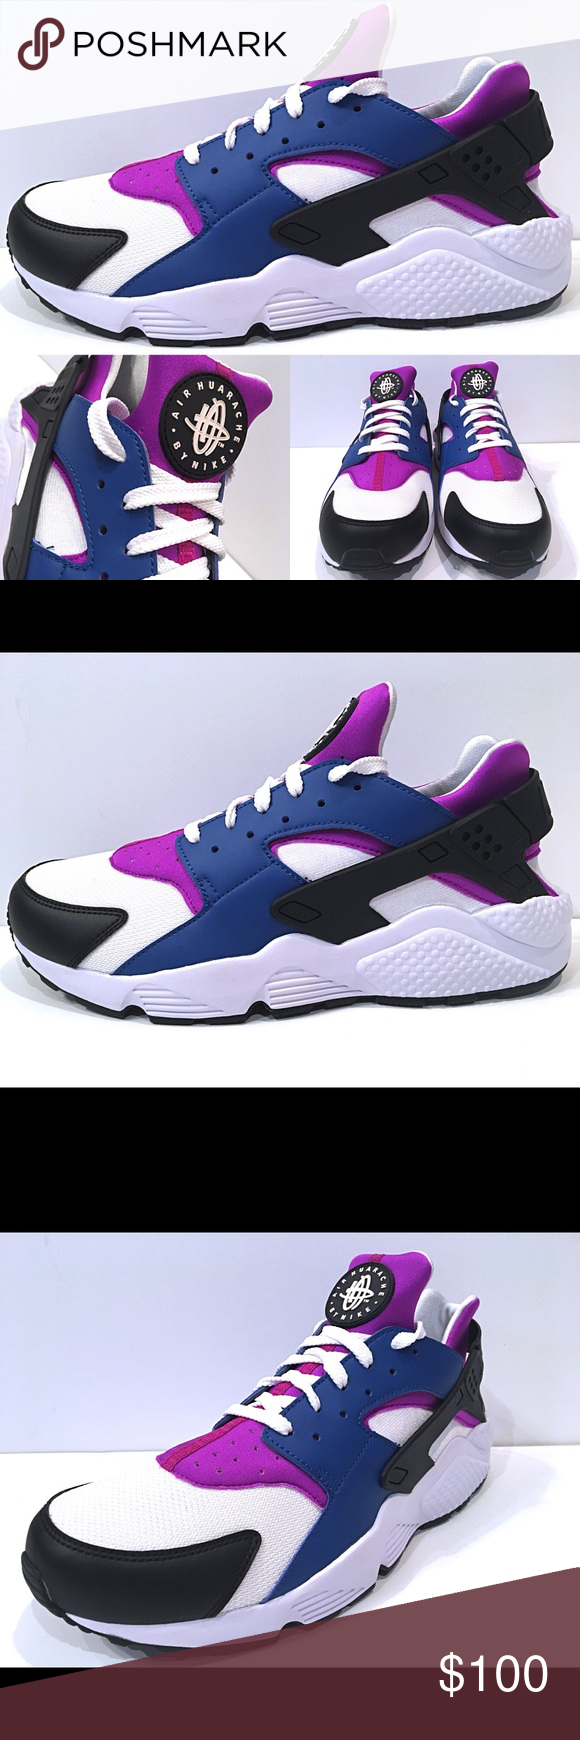 ec8cbee5e356 Nike Air Huarache Blue Jay White Hyper Violet Sz13 Nike Air Huarache Blue  Jay White Hyper Violet Men s Running Size 13 318429 415 New with Original  Box Nike ...